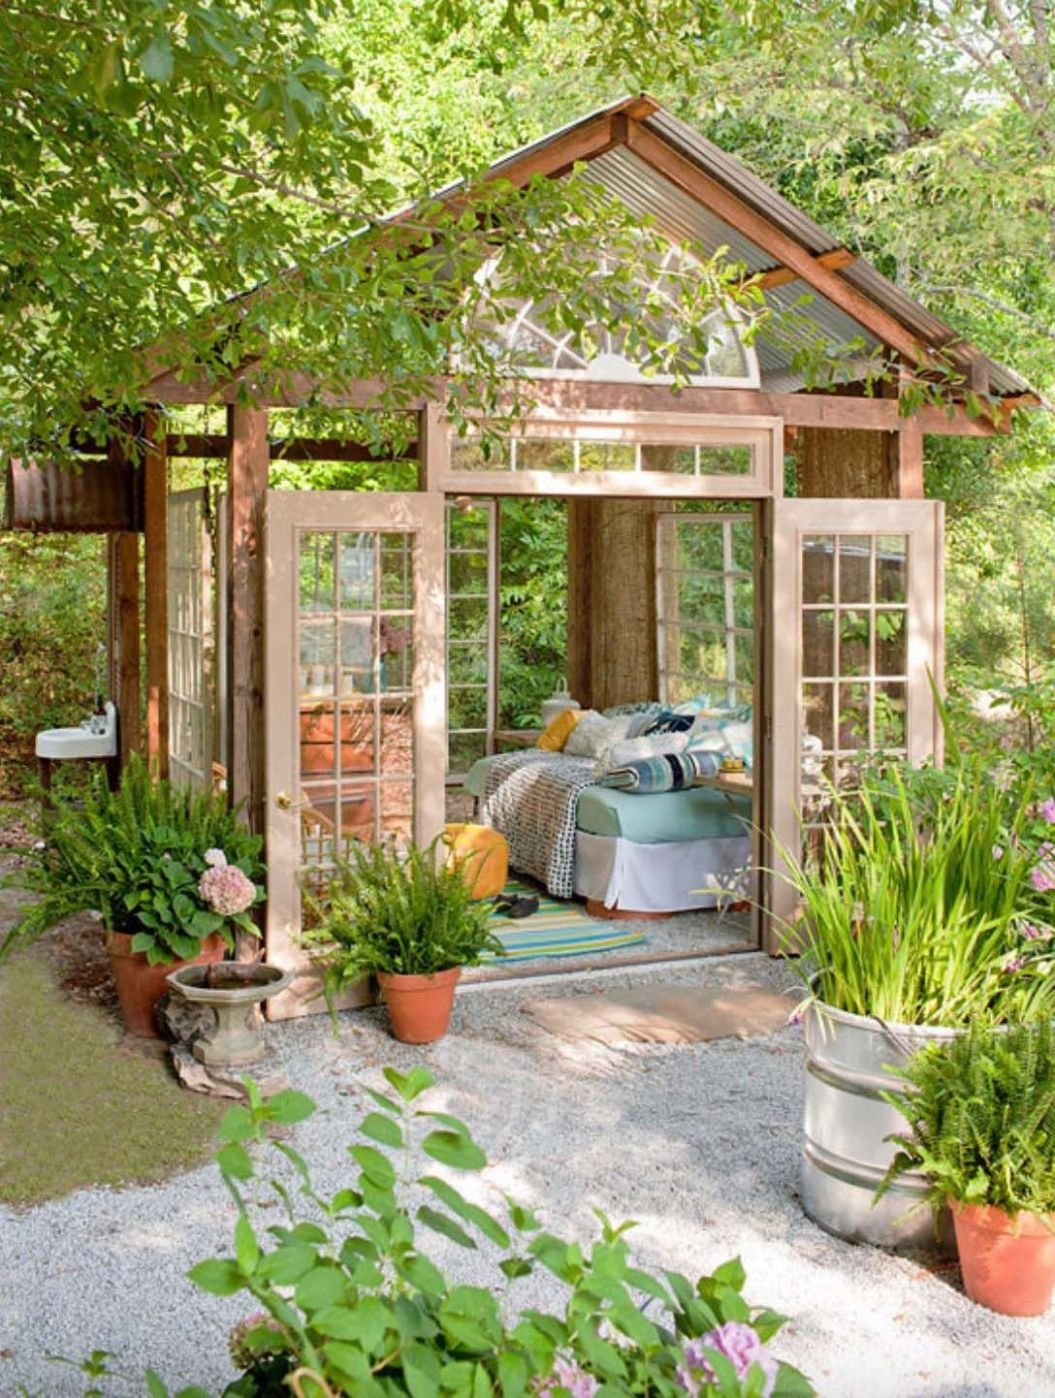 10+ Wonderfully Inspiring She Shed Ideas To Adorn Your Backyard ..